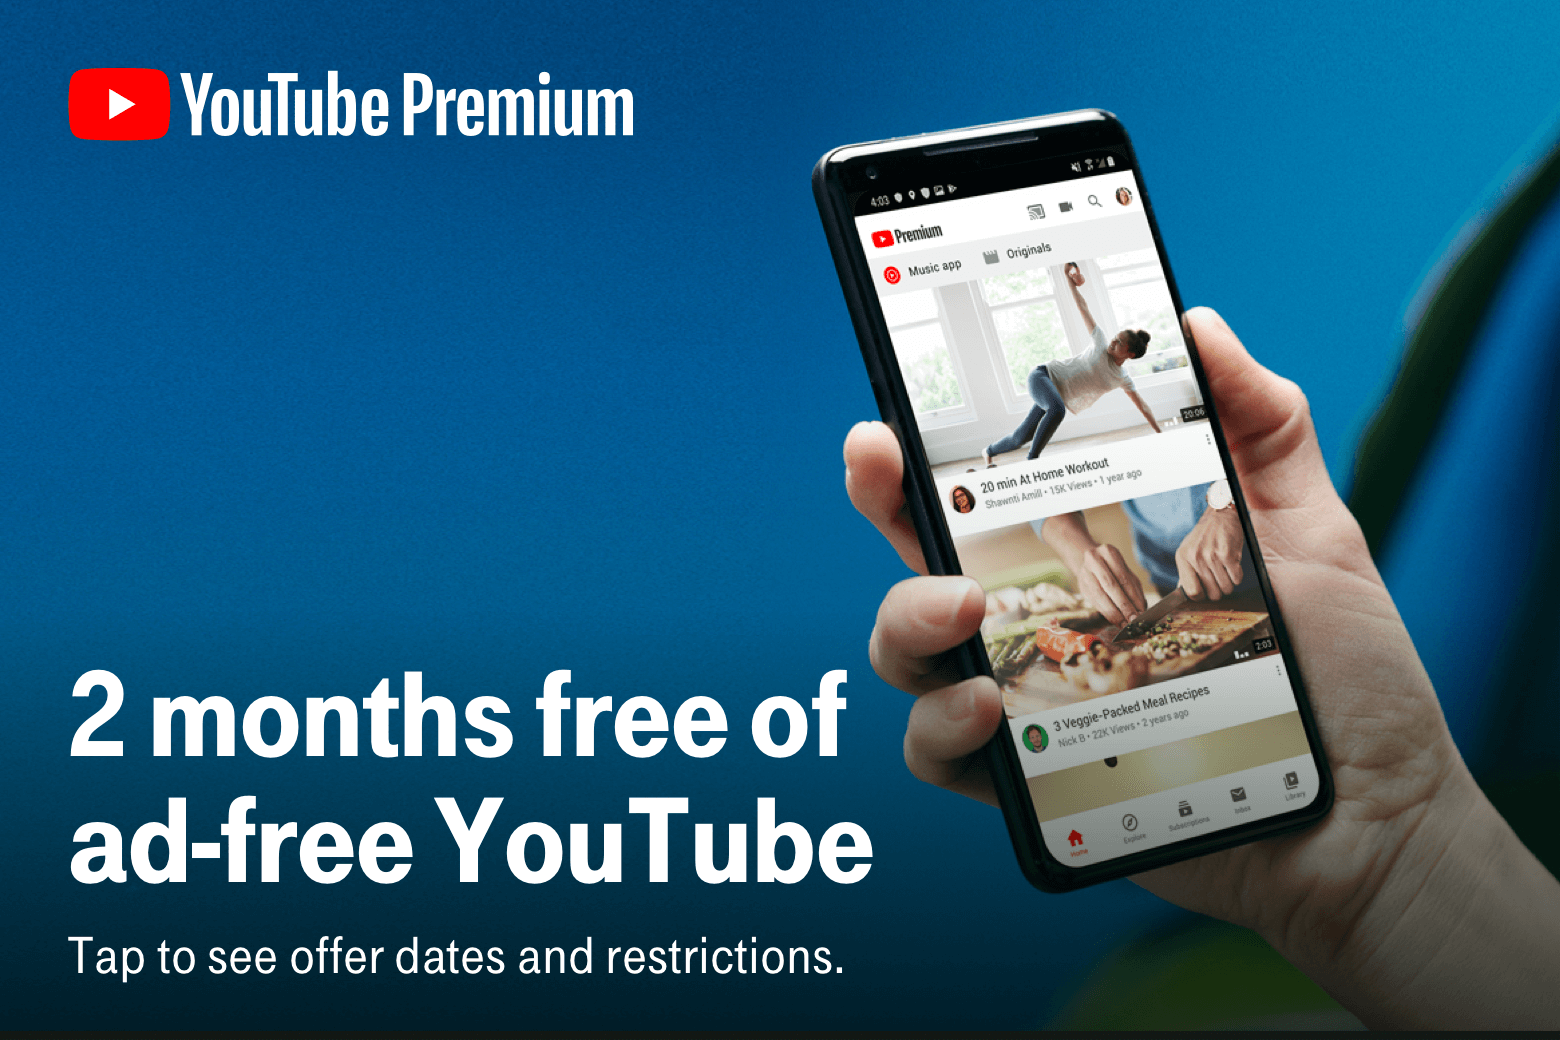 YouTube Premium. 2 months free of ad-free YouTube. Tap to see offer dates and restrictions.